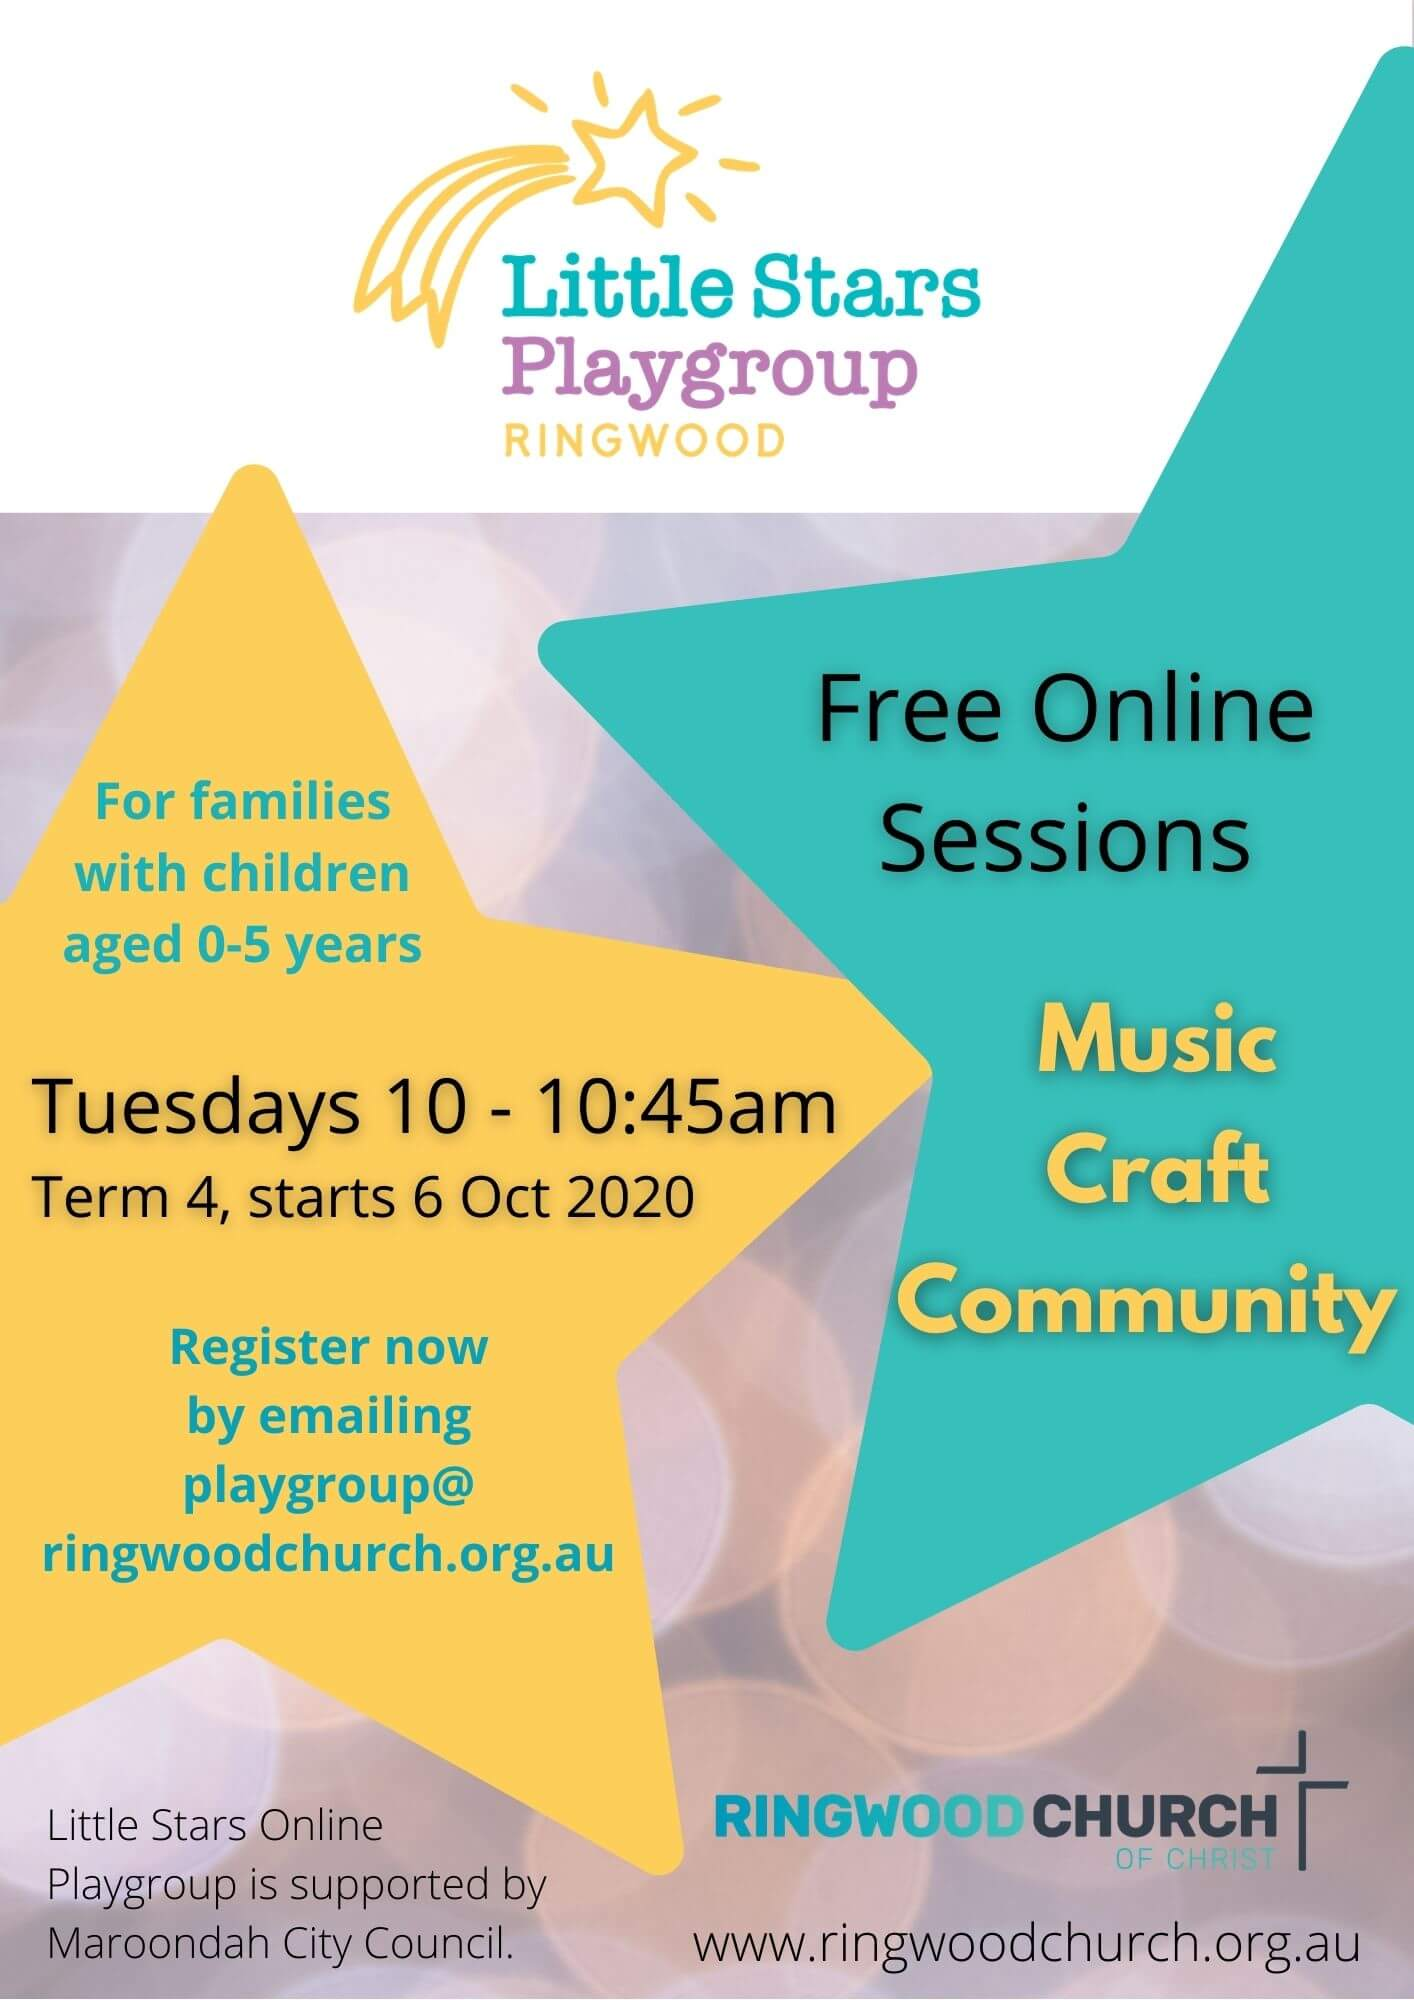 Little Stars Playgroup flyer